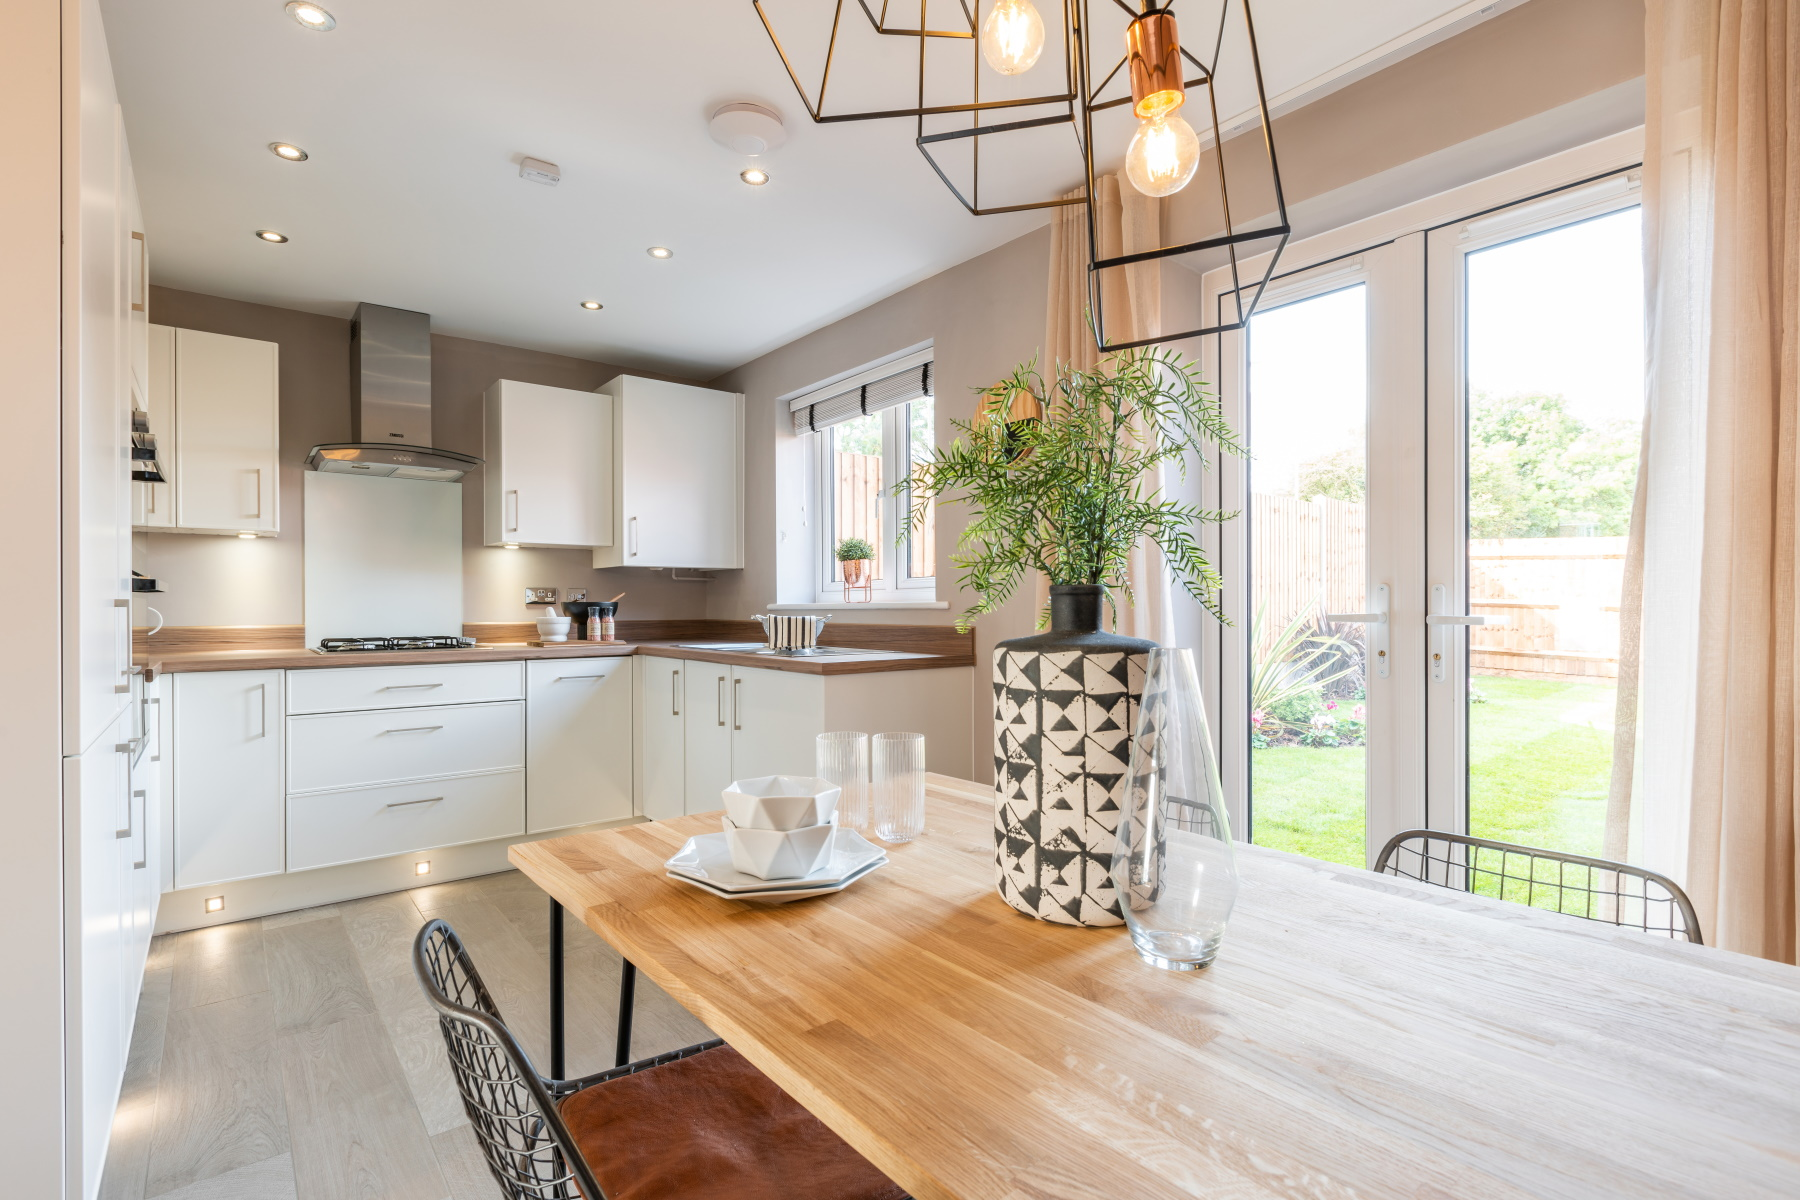 TW Exeter - Cranbrook - Gosford example kitchen 2